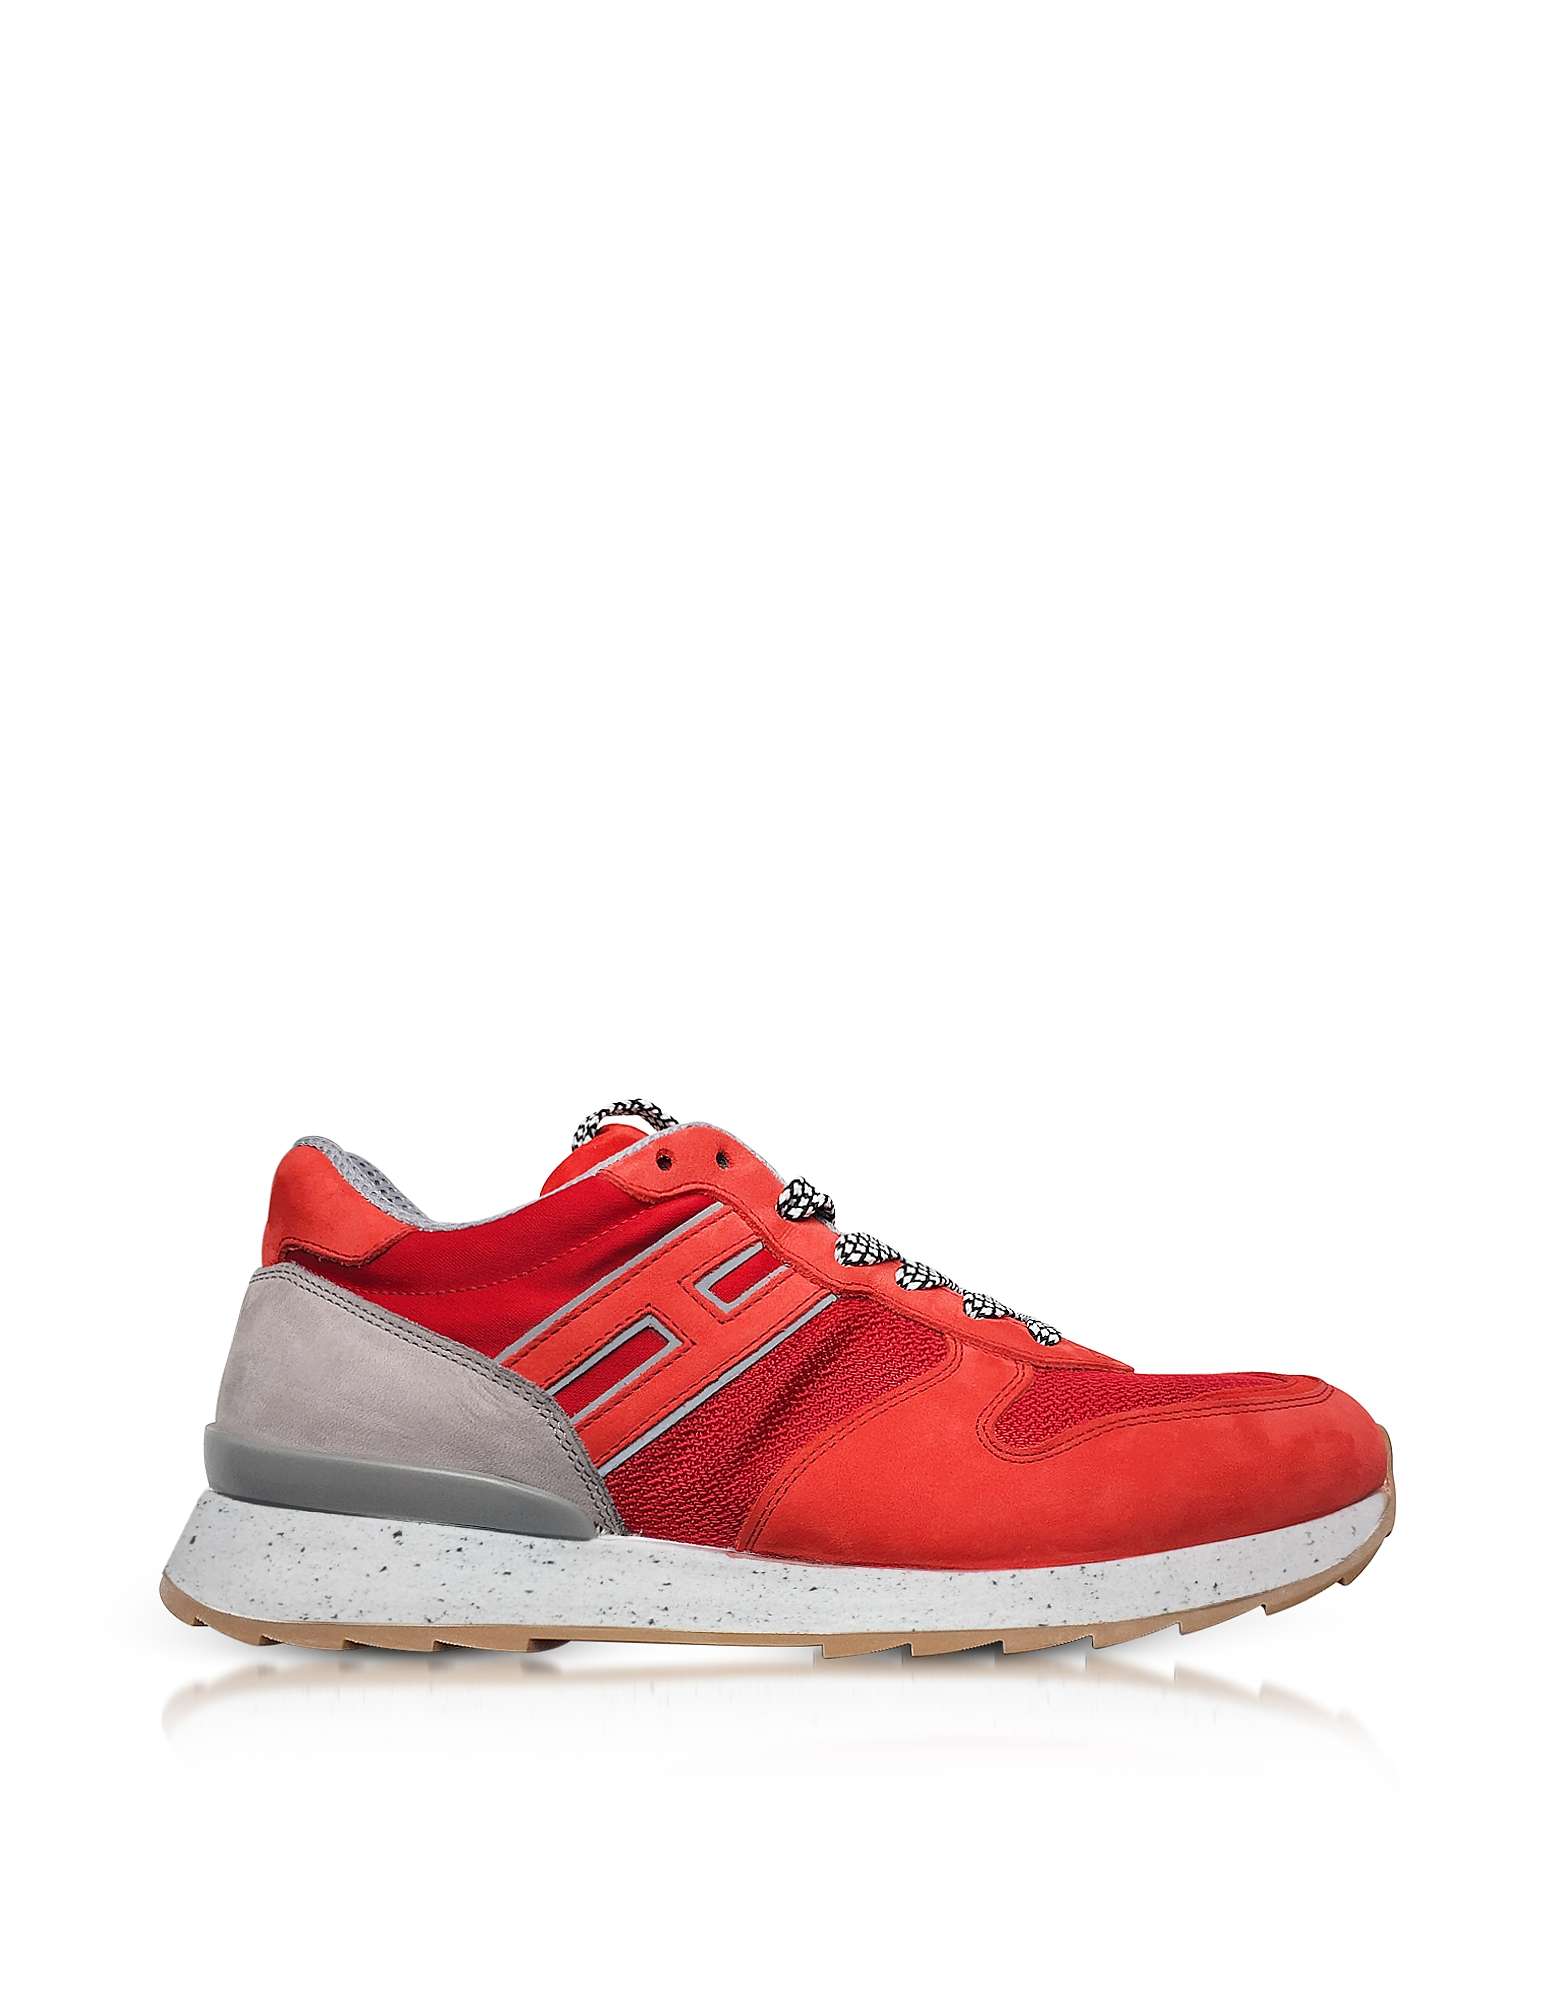 Hogan Shoes, Running R261 Red Nylon and Nubuck Men's Sneakers